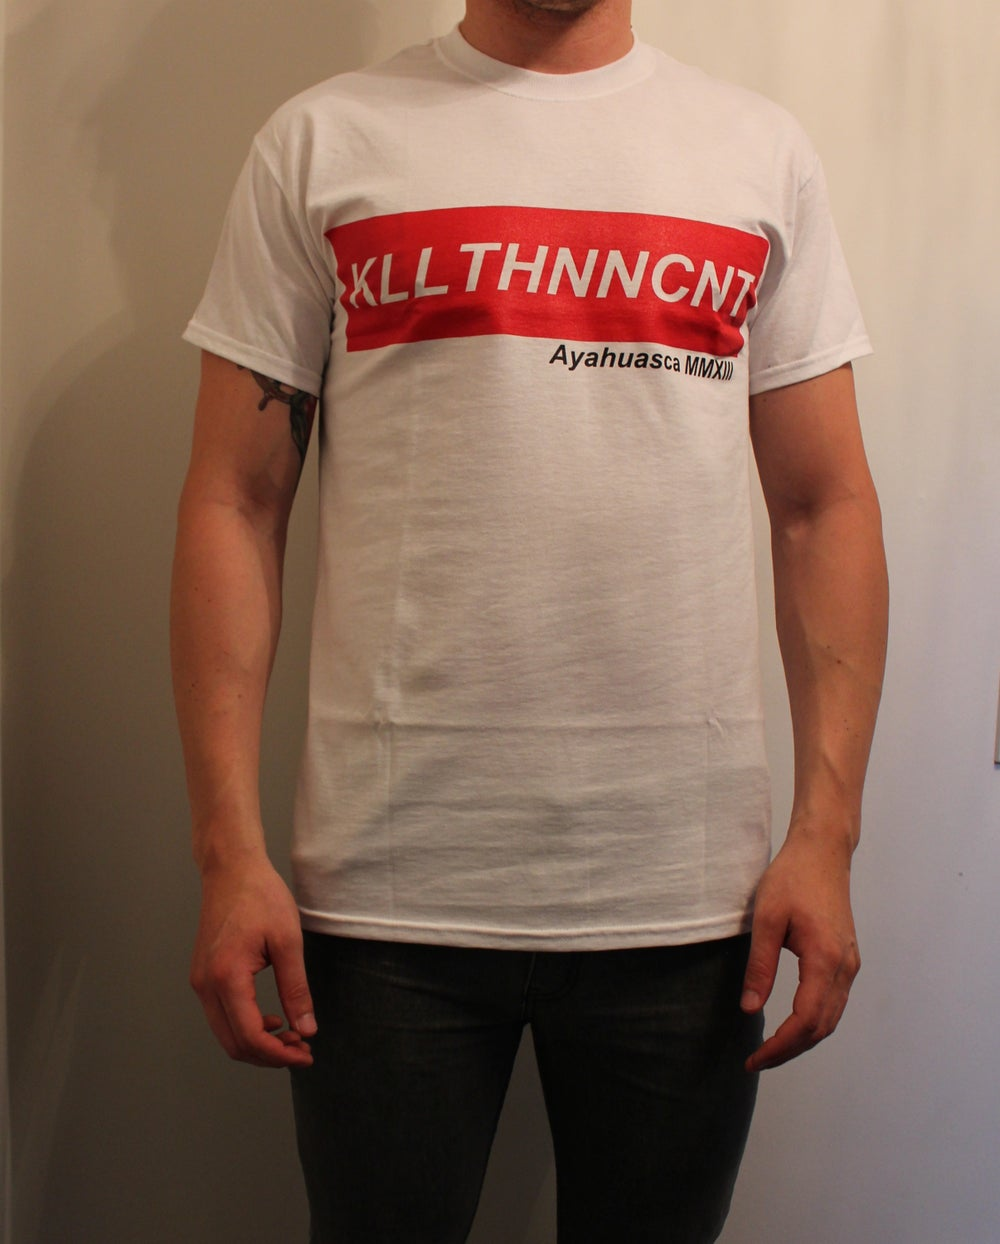 Image of Kill The Innocent - KLLTHNNCNT Ayahuasca MMXI Tee